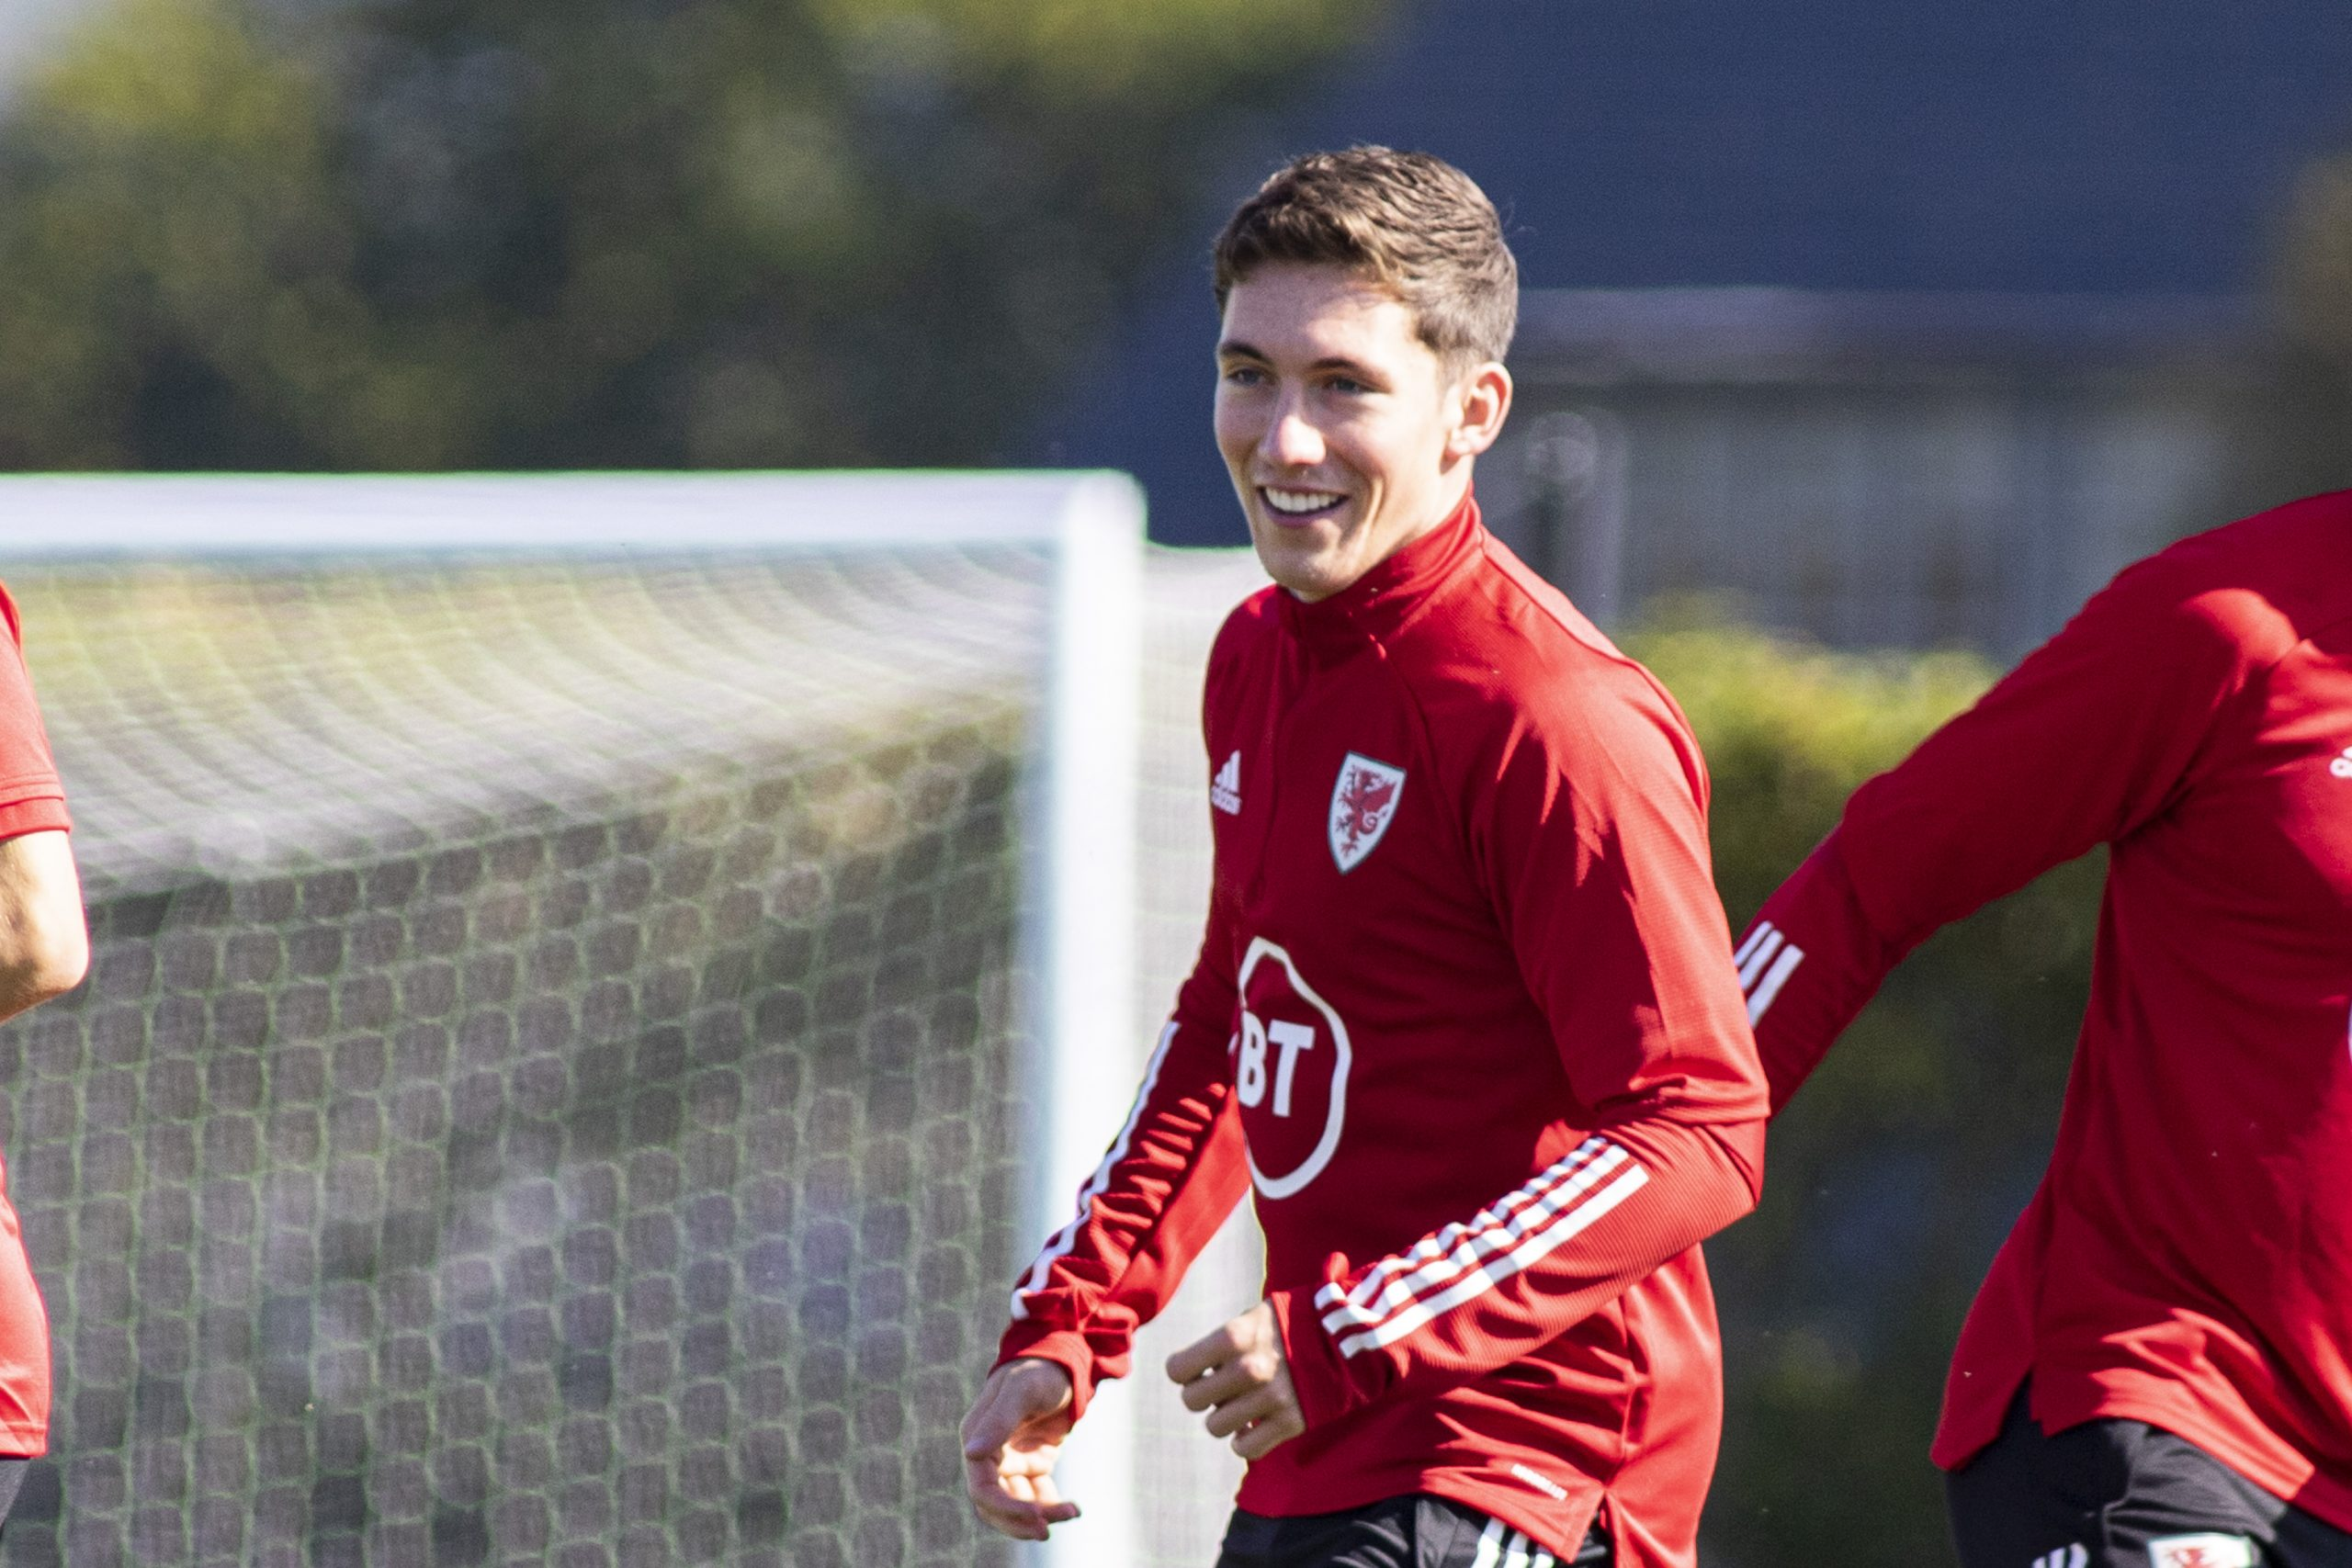 Wales winger Harry Wilson closing in on £15m move to Burnley